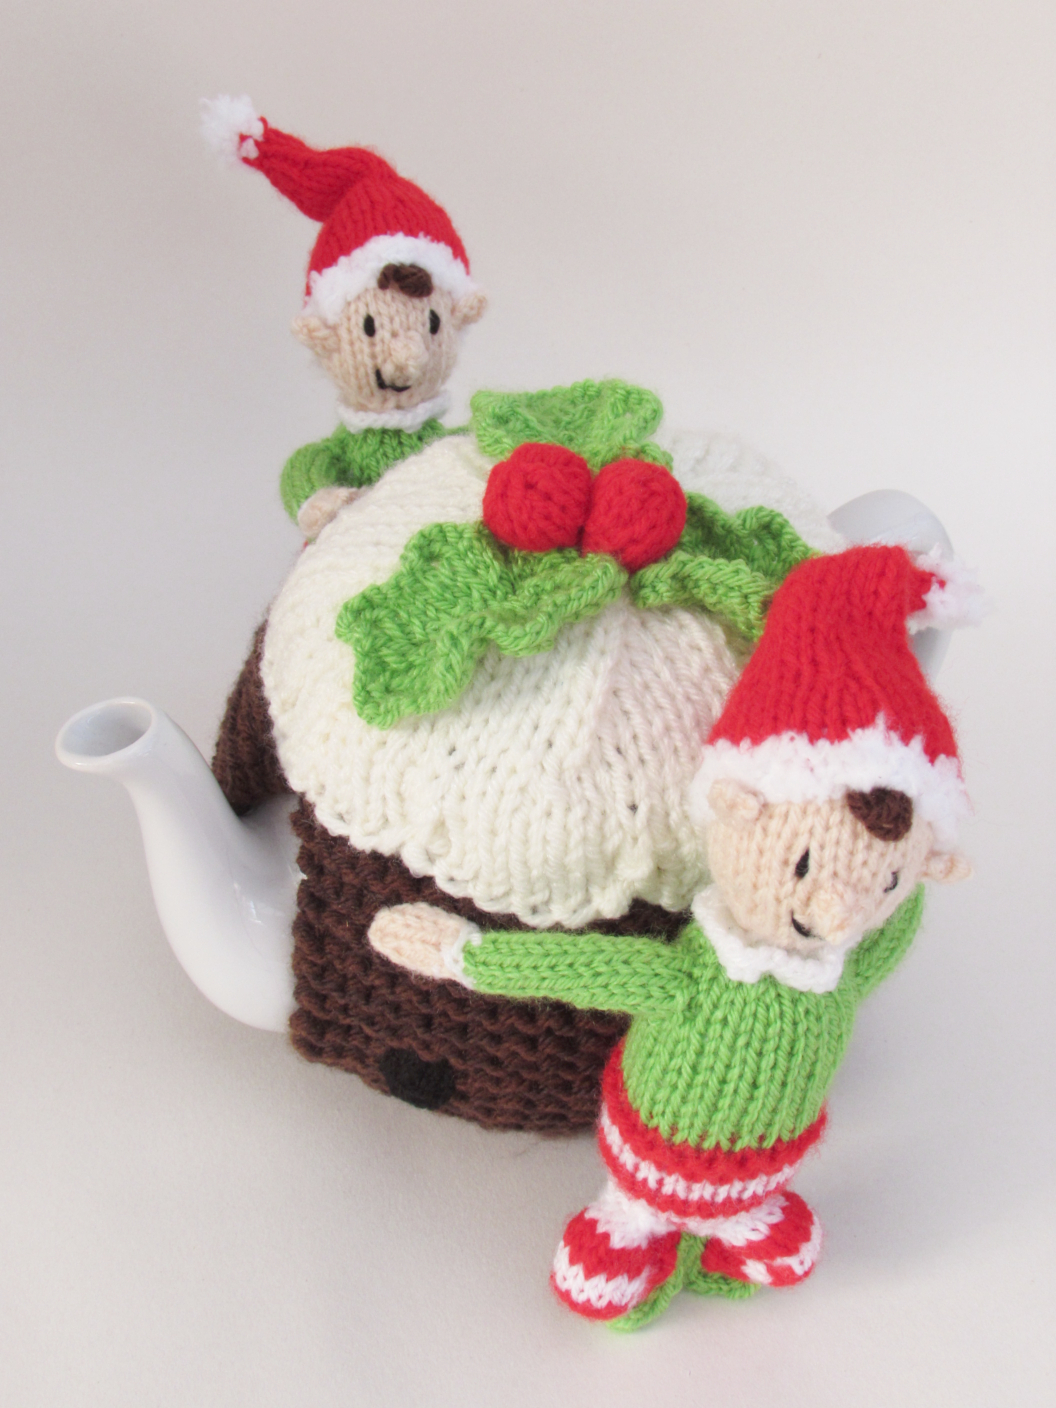 Tea Cosy Knitting Patterns From Tea Cosy Folk Learn How